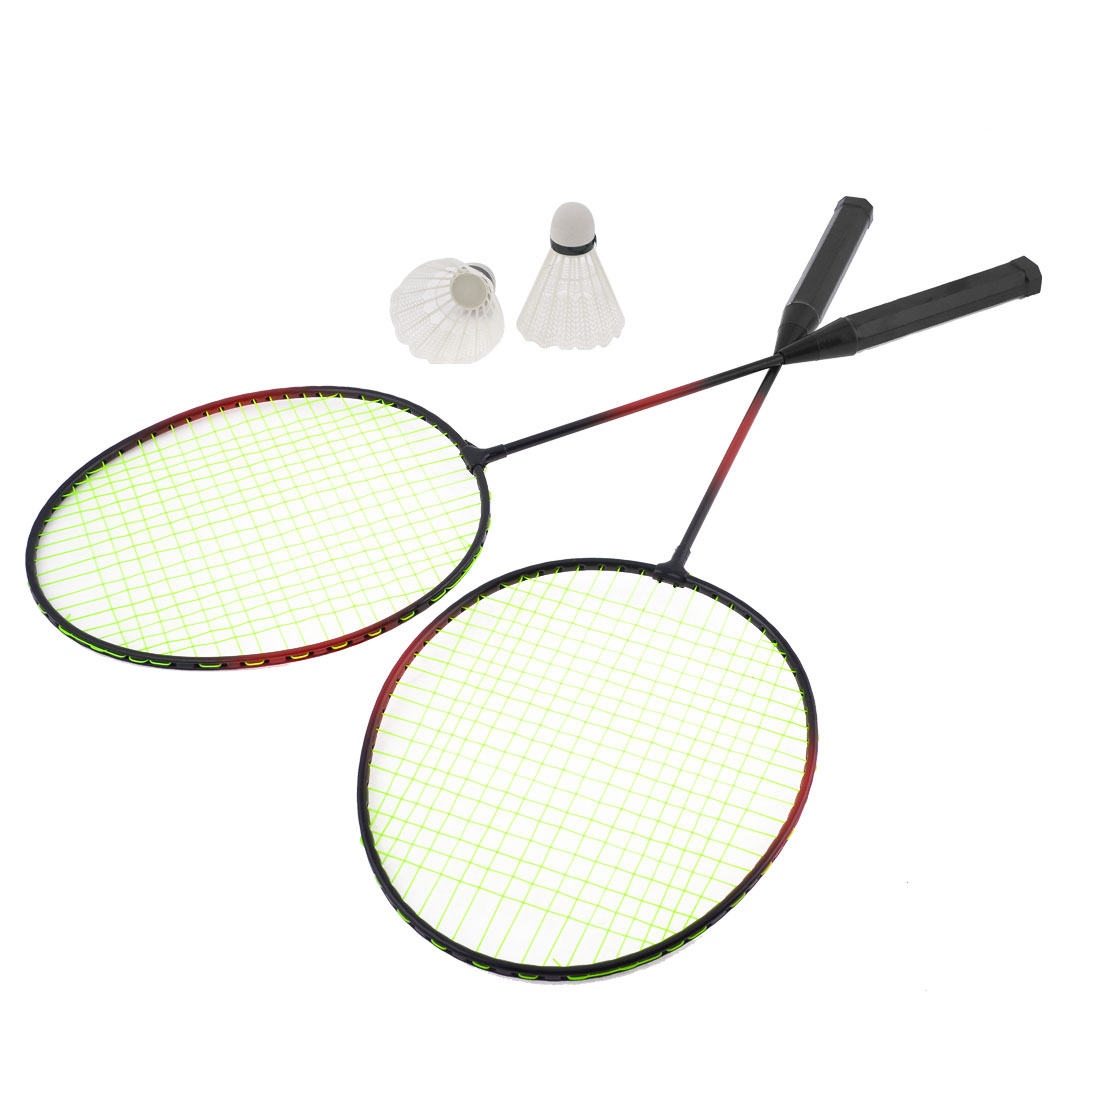 1 Pair Green String Sports Badminton Rackets Racquets w 2 Shuttlecocks